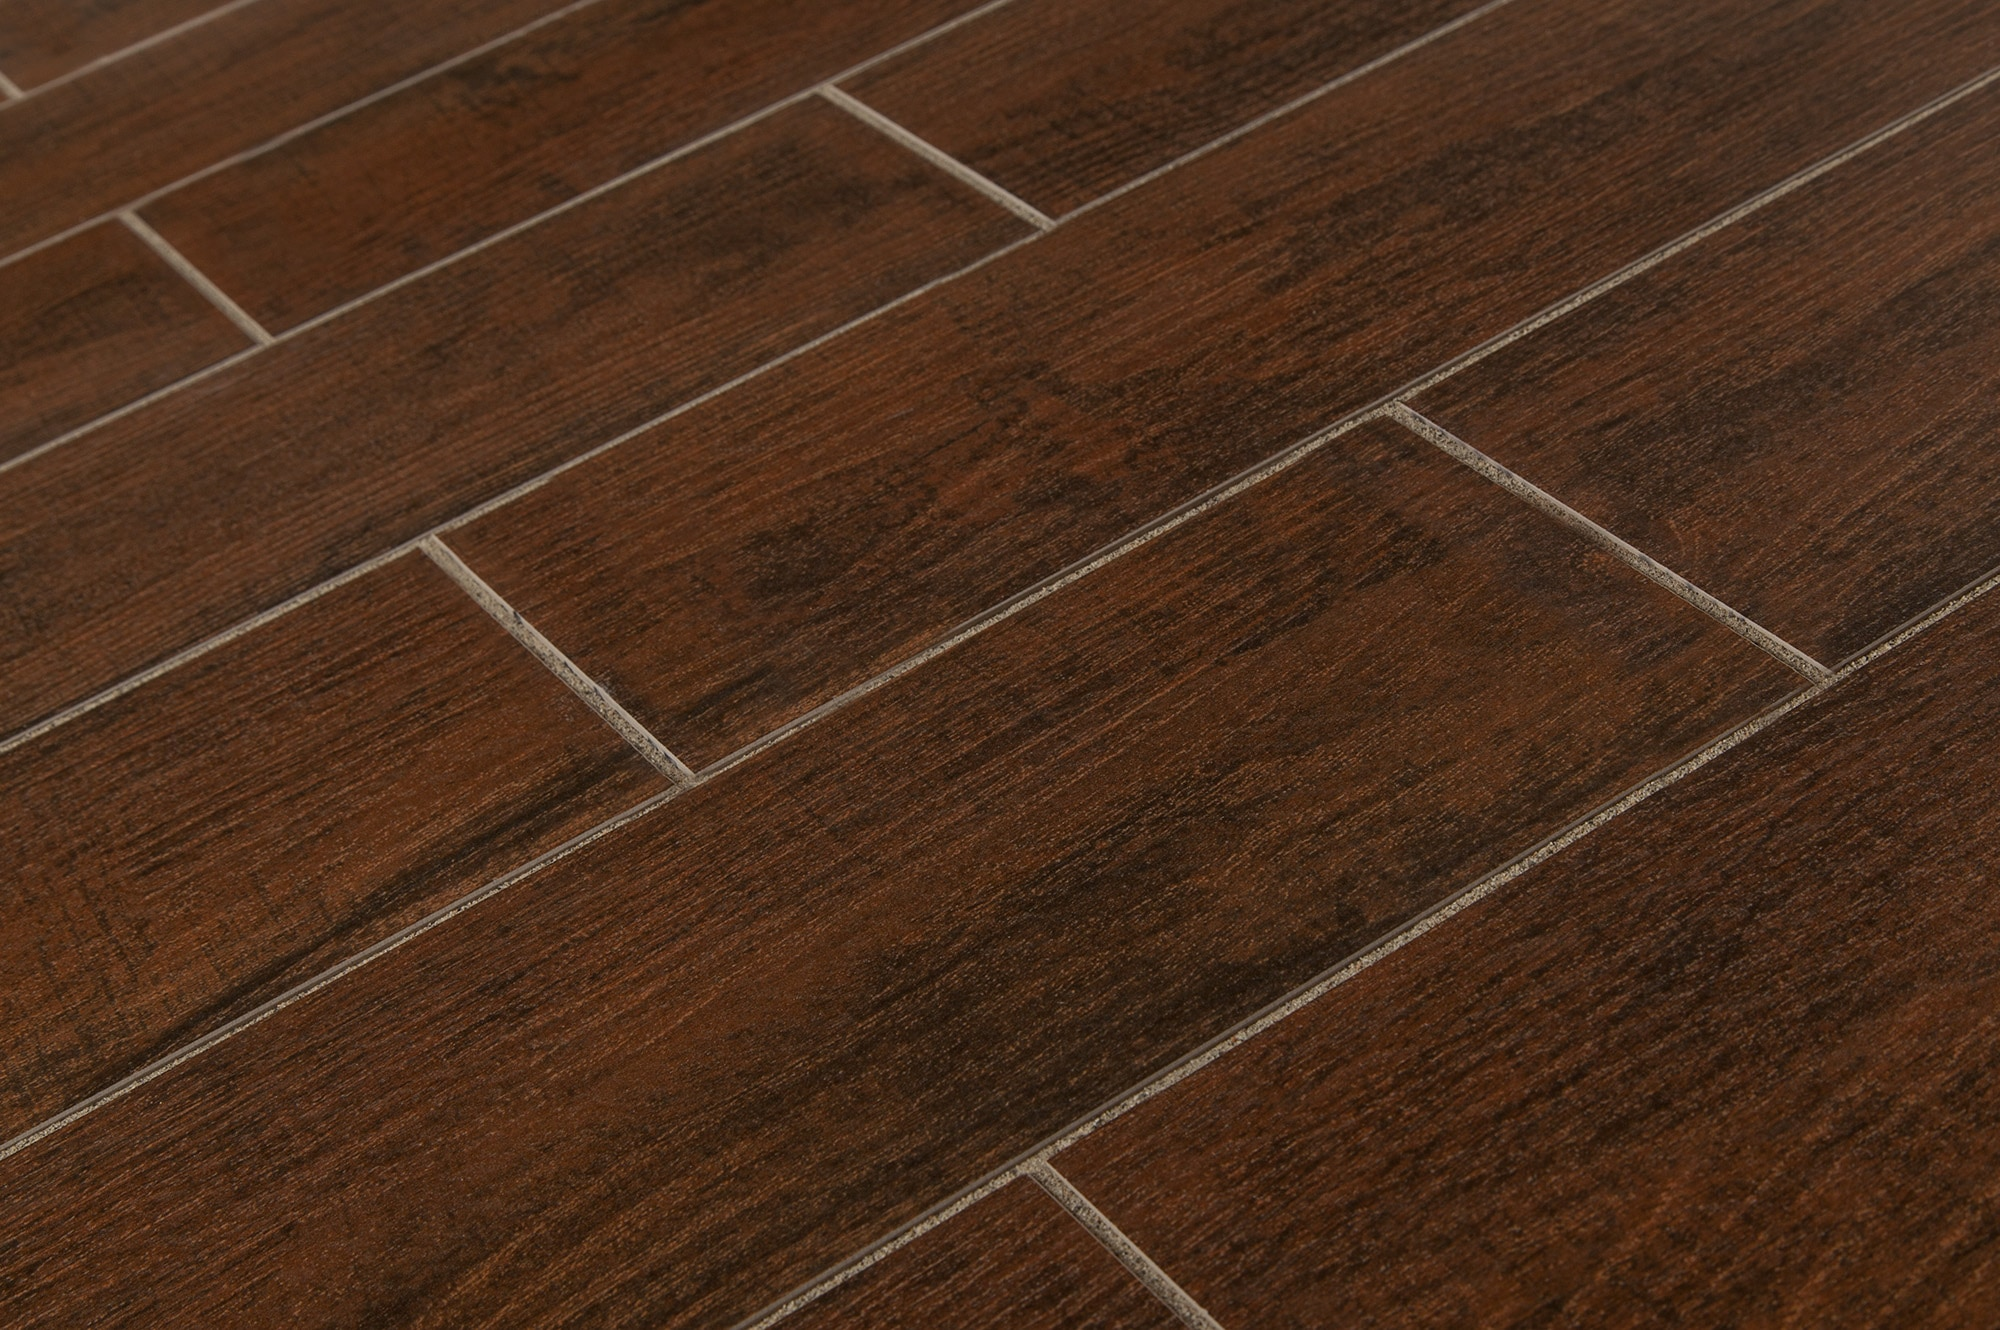 wood grain ceramic tile flooring images